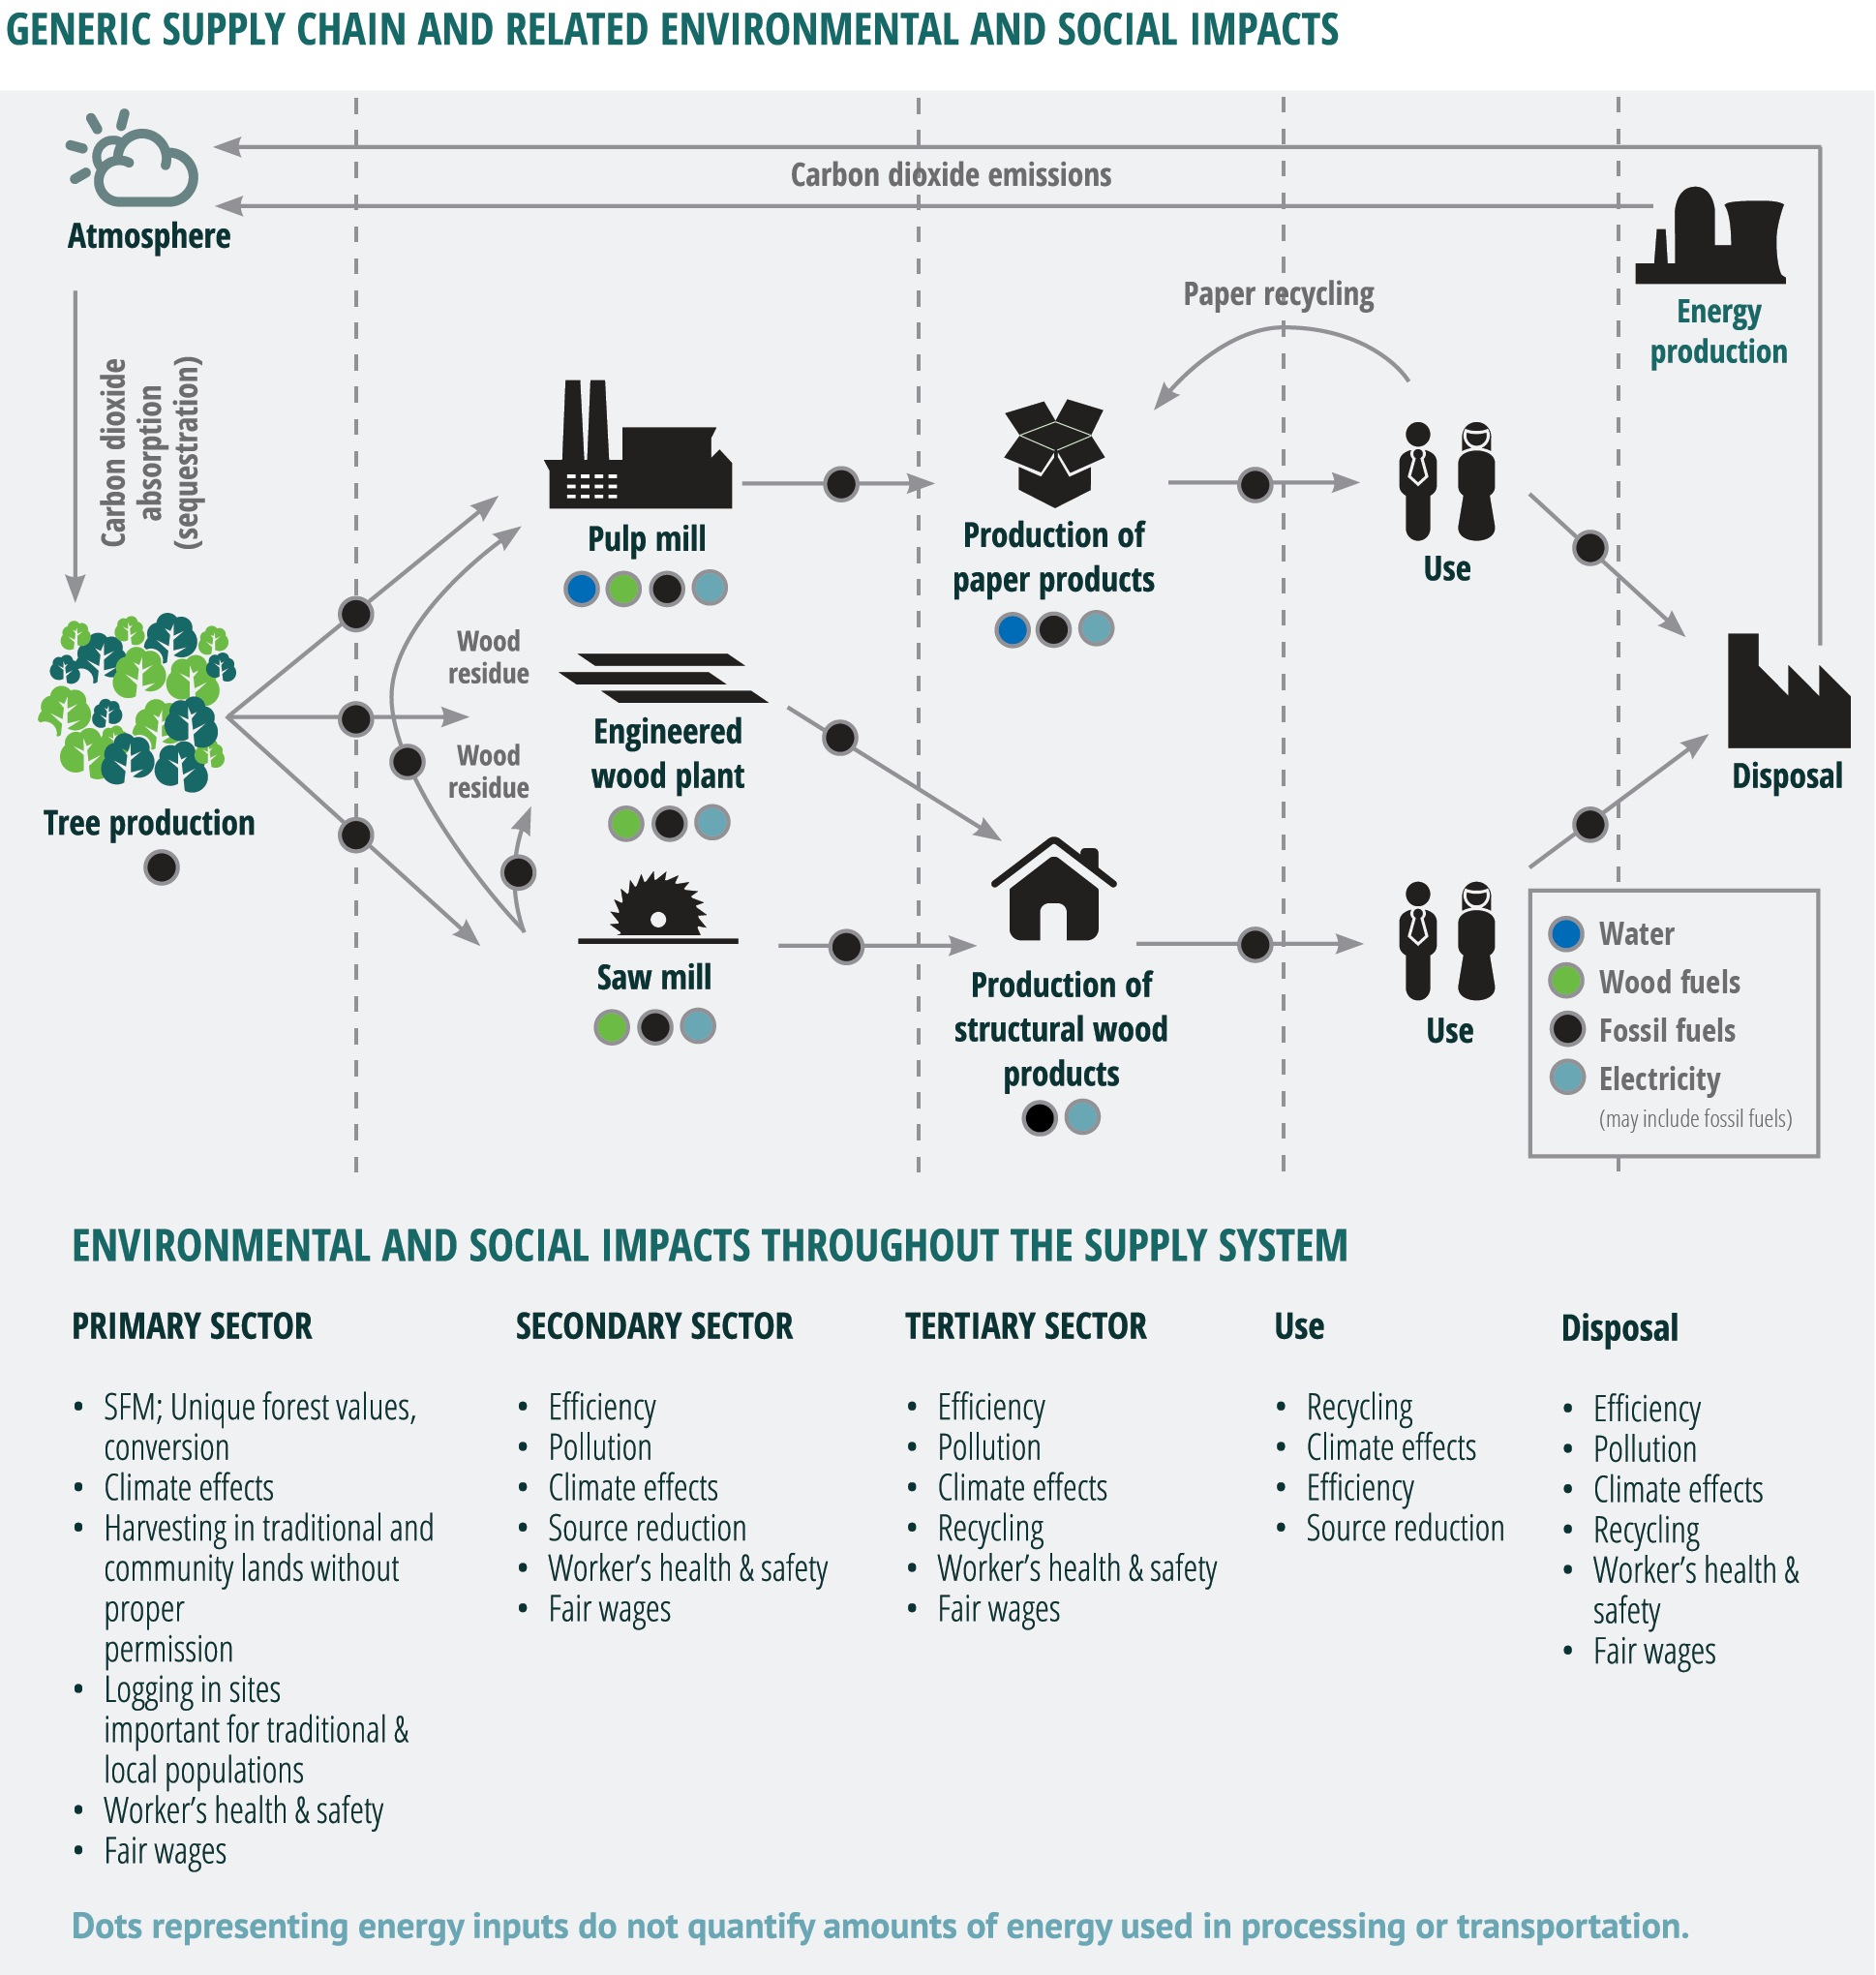 Home Sustainable Forest Products Basic Electrical Wiring Symbols First We Need To Know Some Common Generic Supply Chain And Related Environmental Social Impacts Infographic